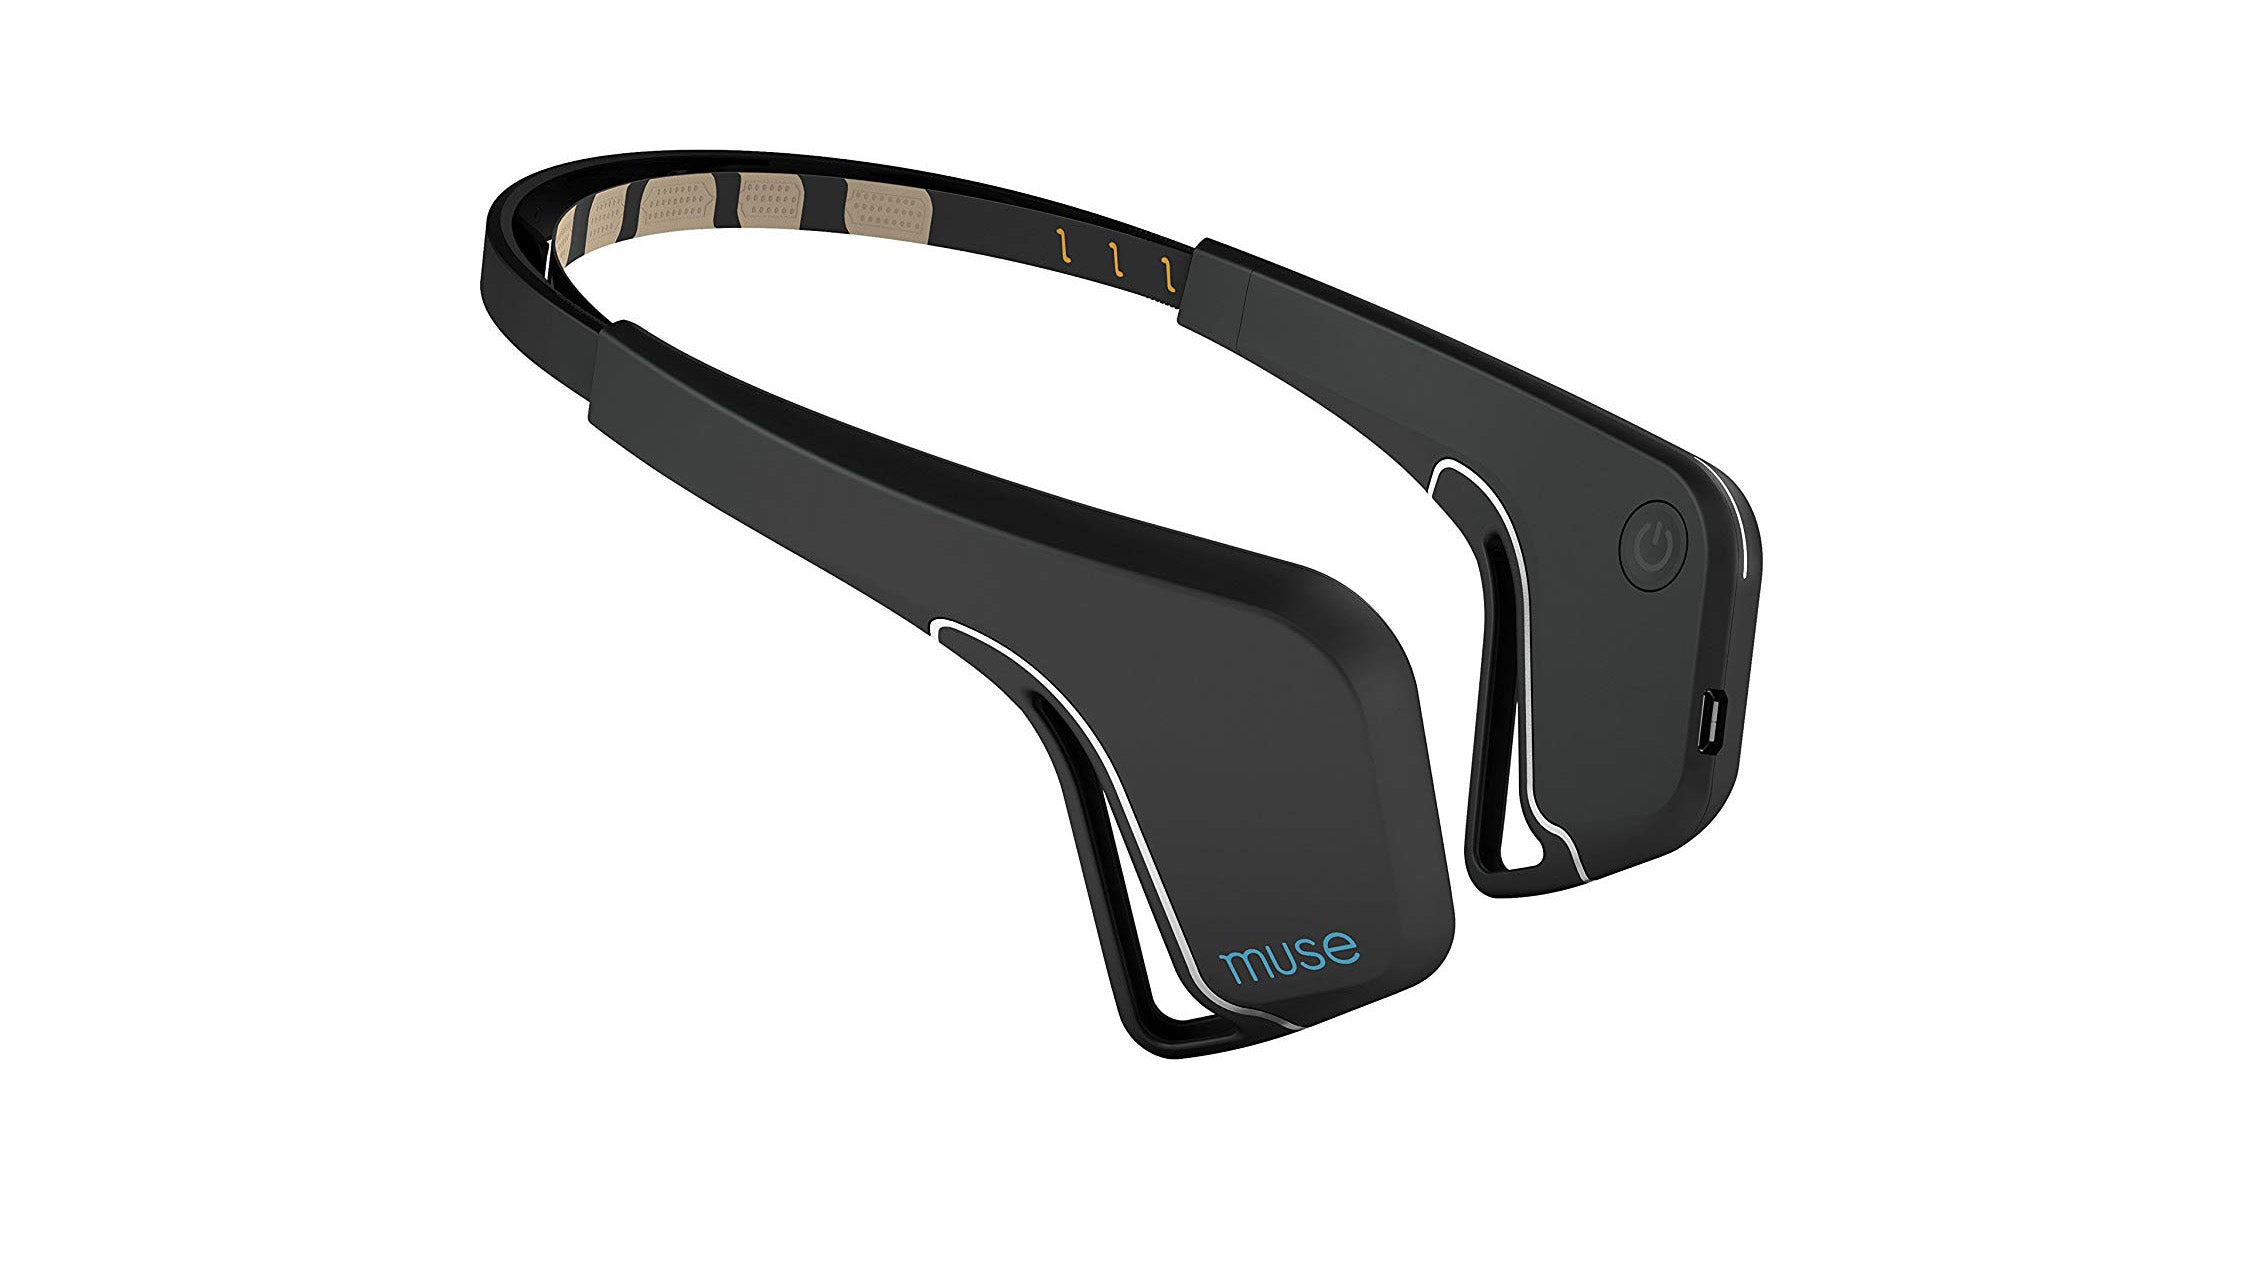 #5 cool tech gadgets for men: brain sensing head band